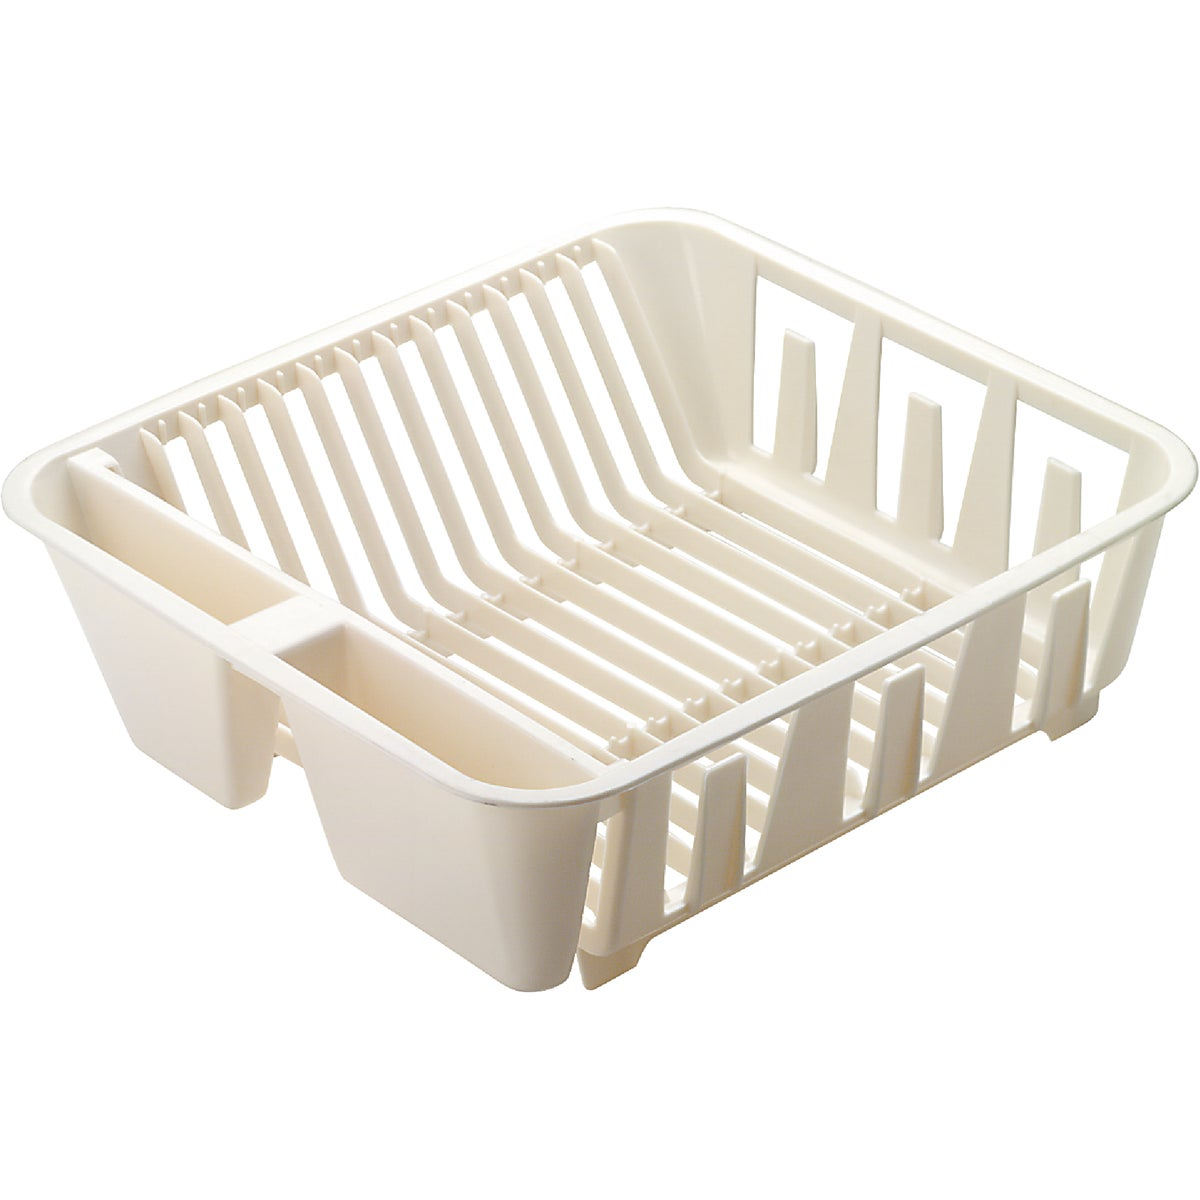 BISQUE TWIN DISH DRAINER - 6049-AR-BISQU by Rubbermaid Home